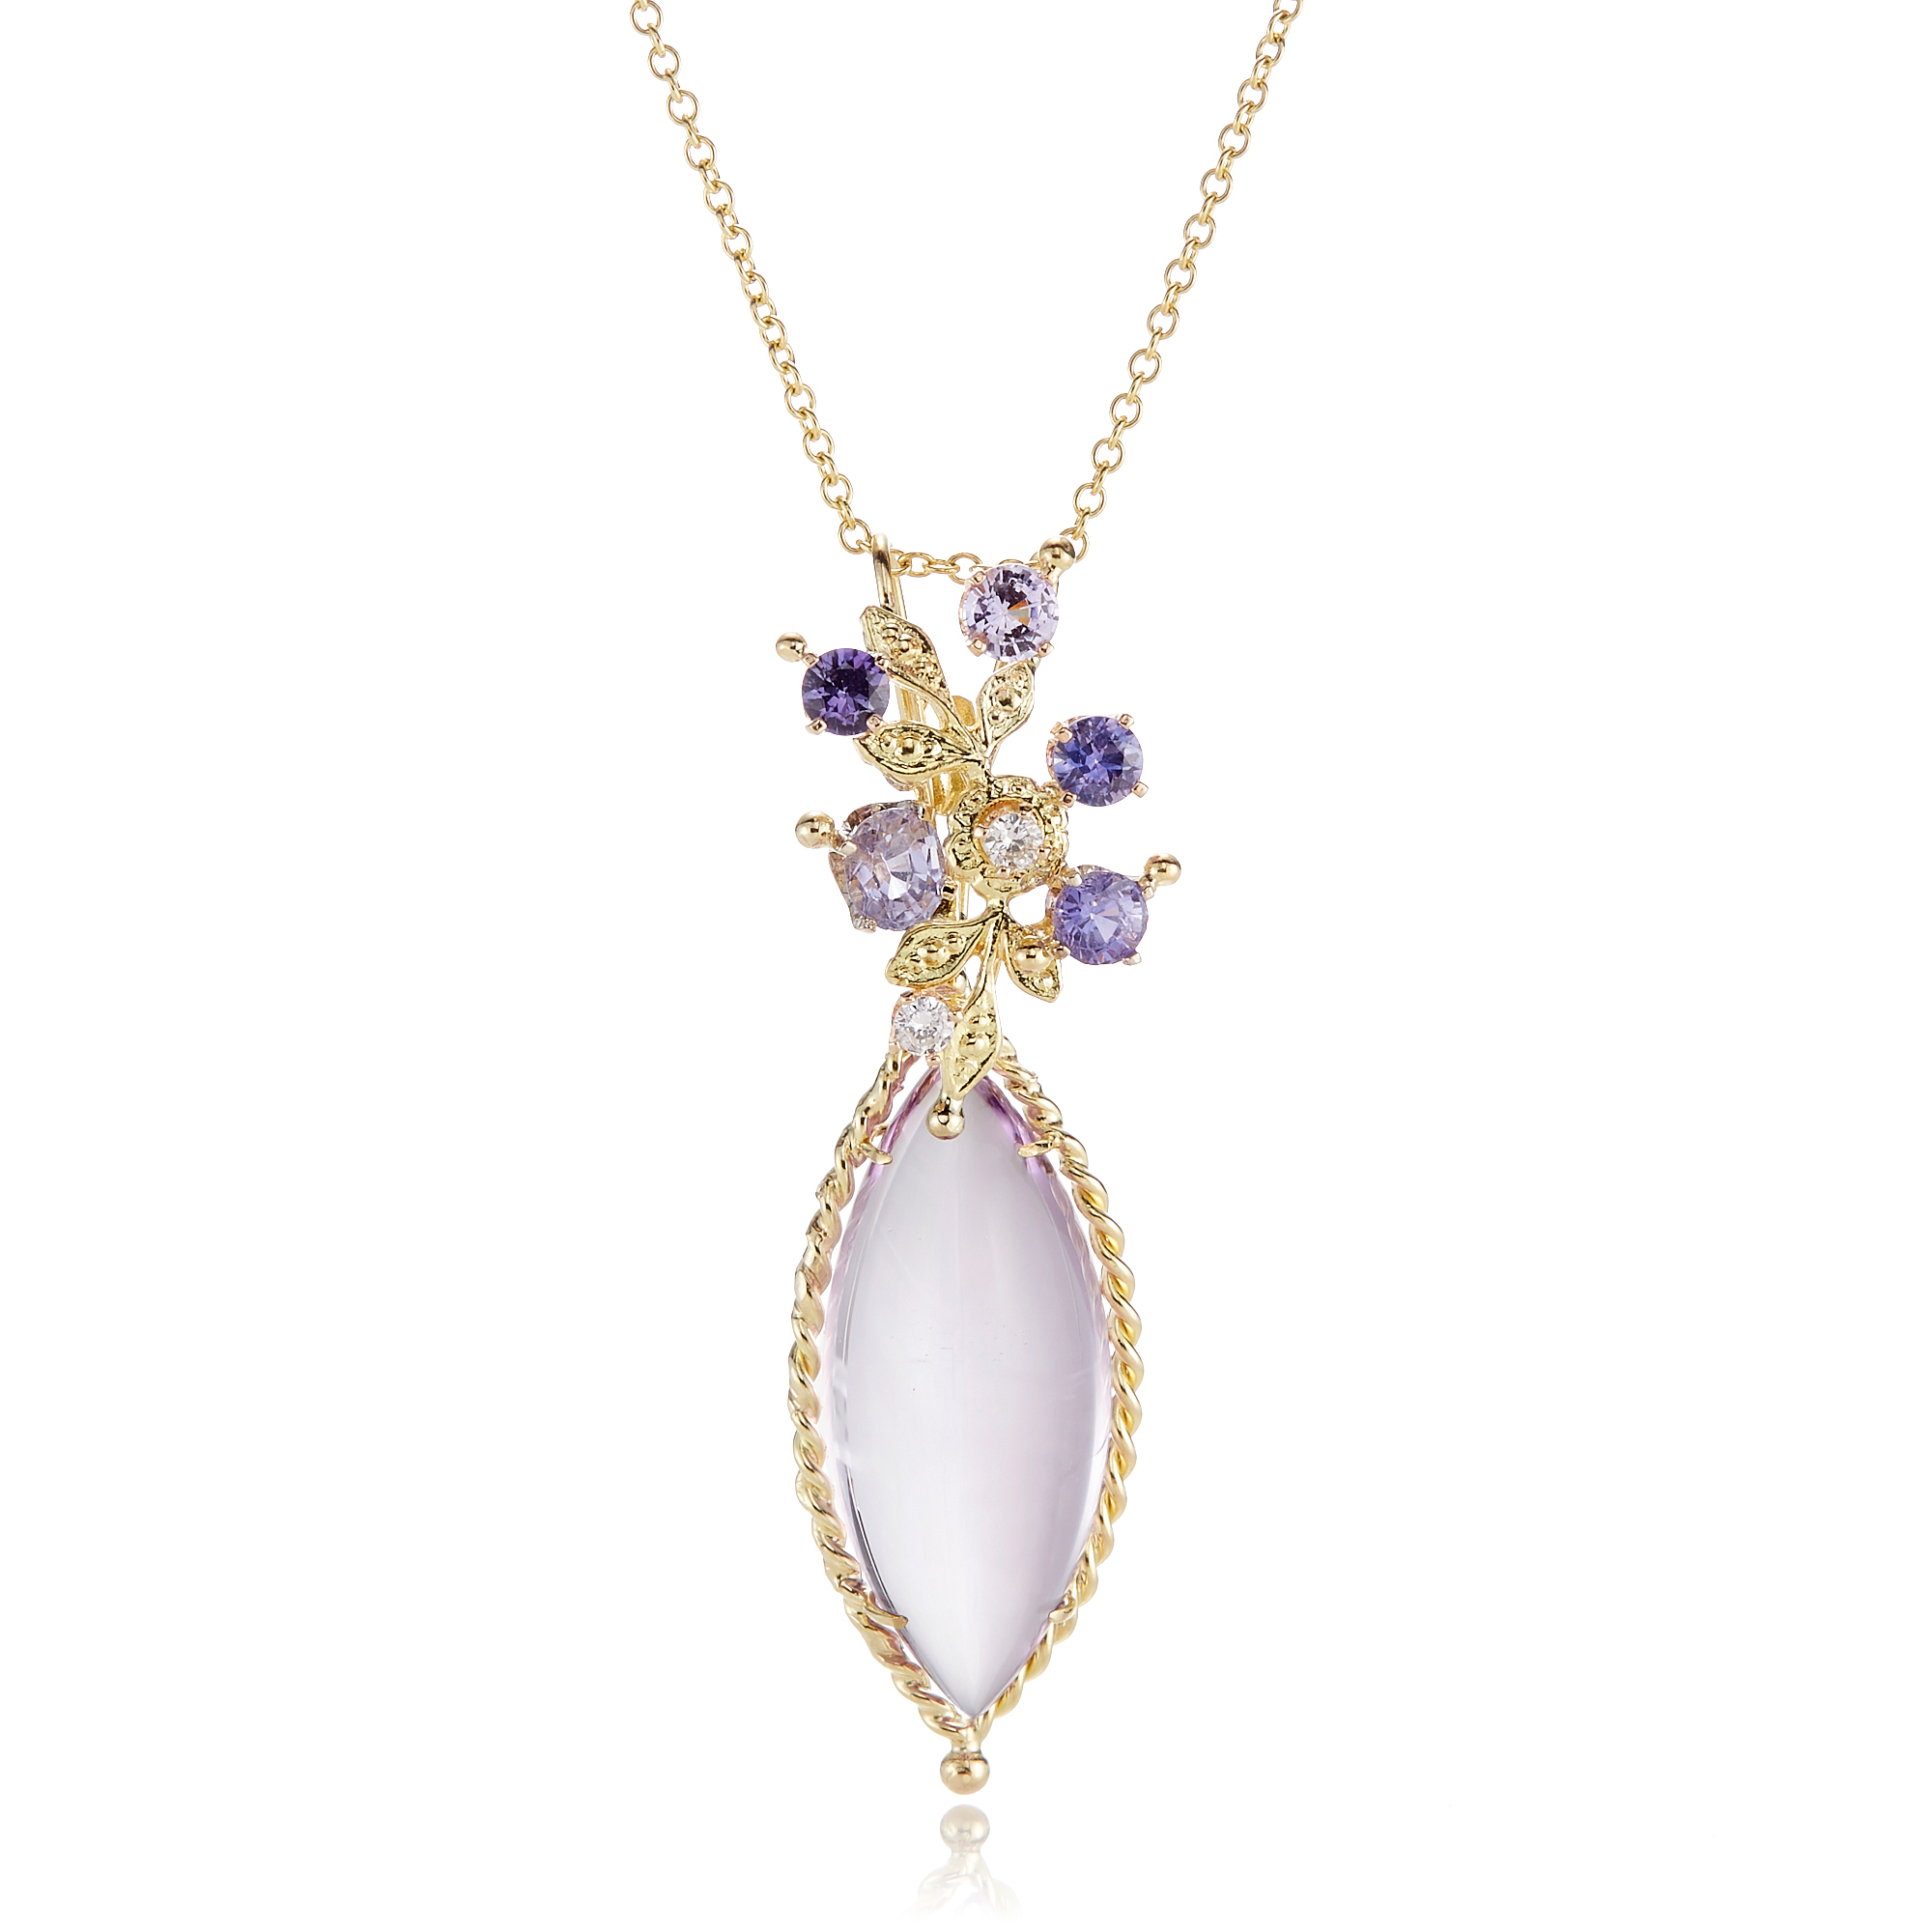 Russell Trusso Amethyst Navette With Floral Cluster Necklace